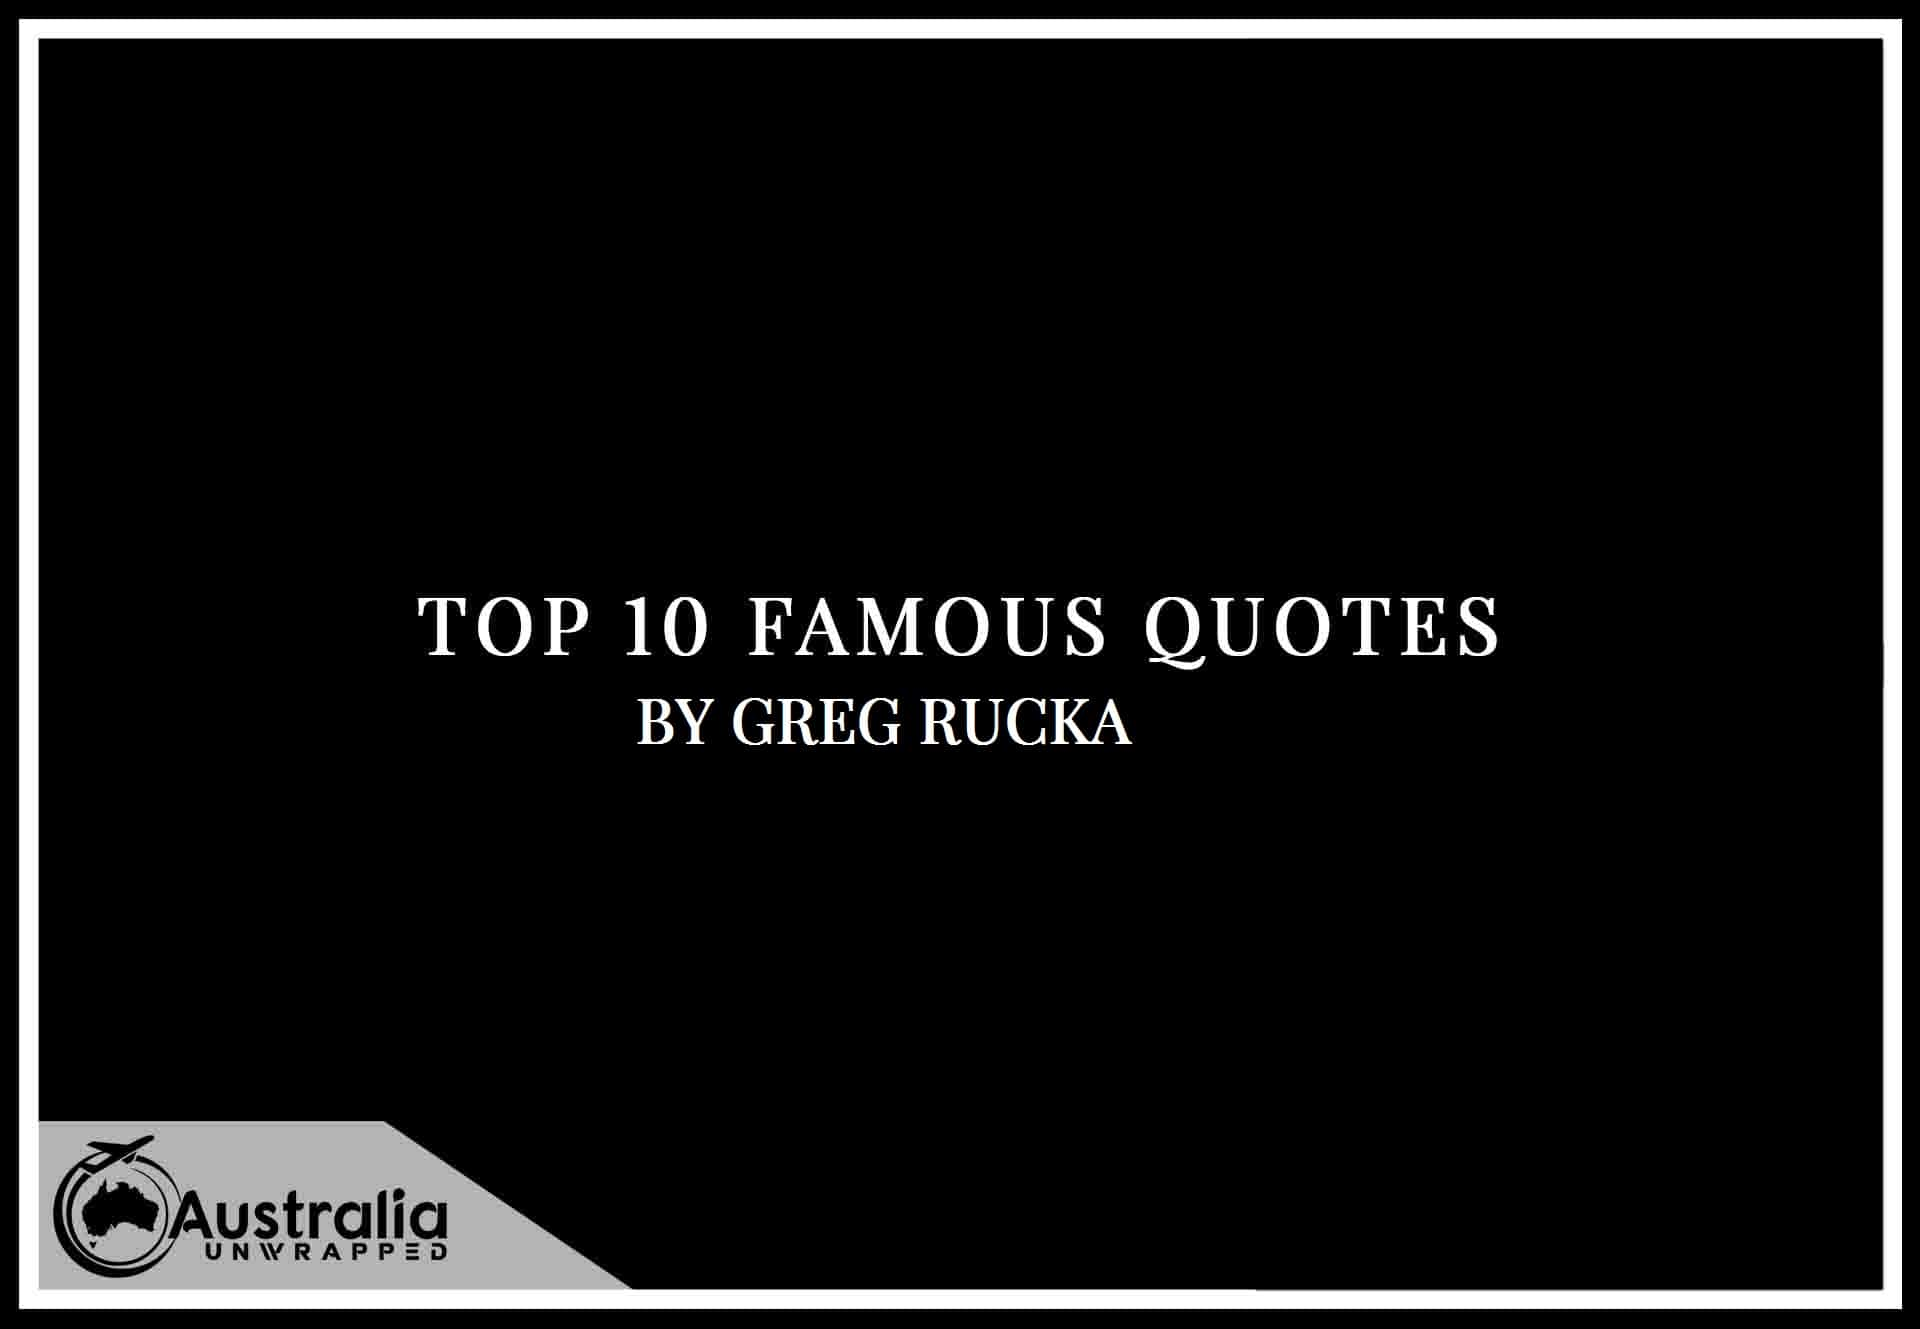 Greg Rucka's Top 10 Popular and Famous Quotes